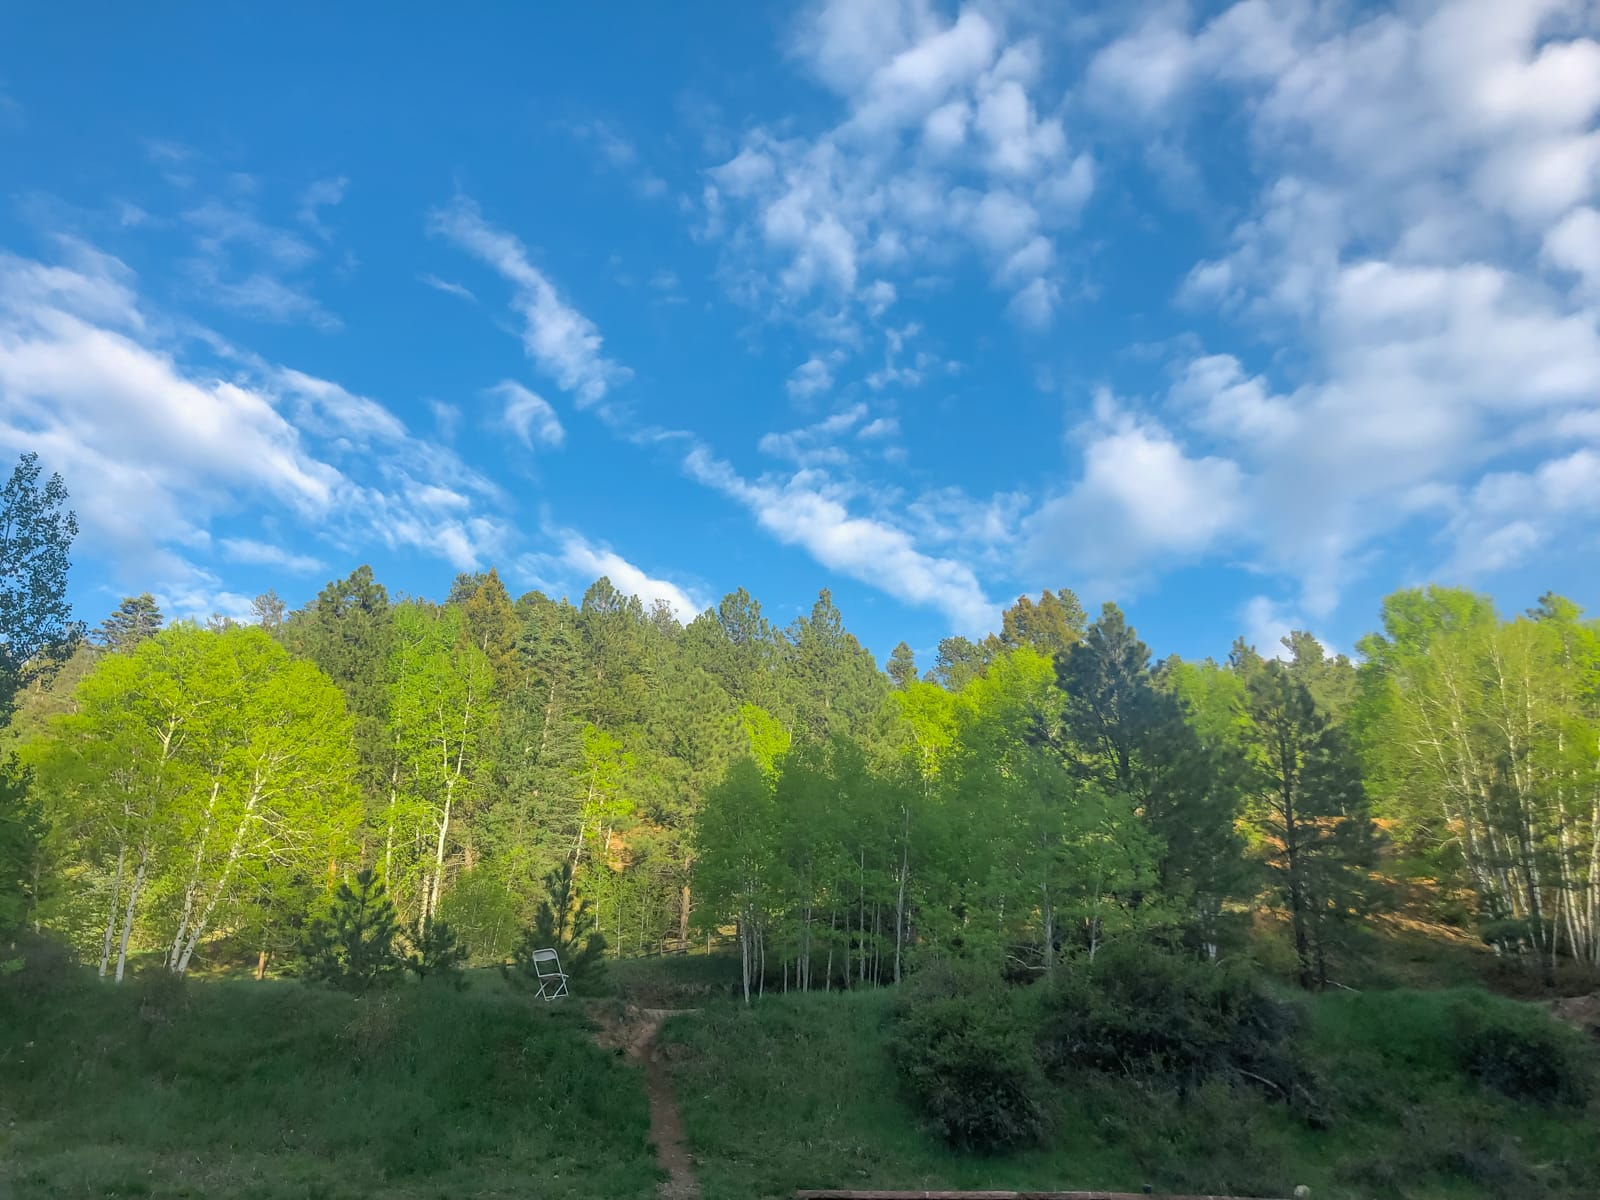 The beautiful mountains, tree, and skies in New Mexico